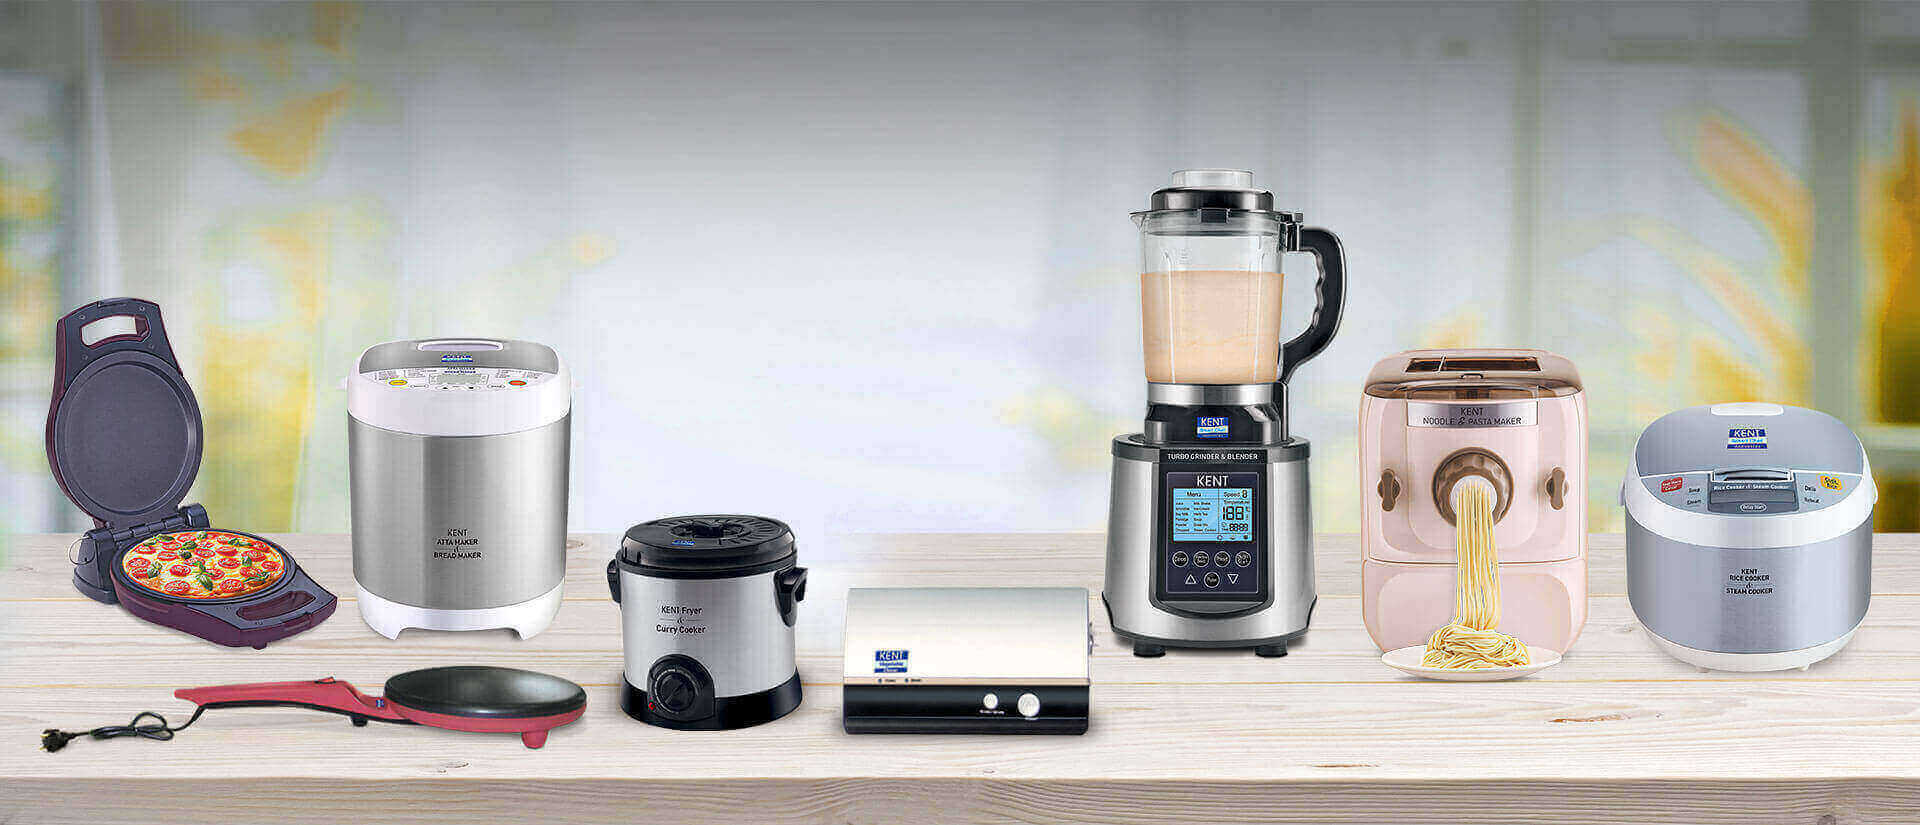 These Enlisted Home Appliances Will Make Your Life Facile!